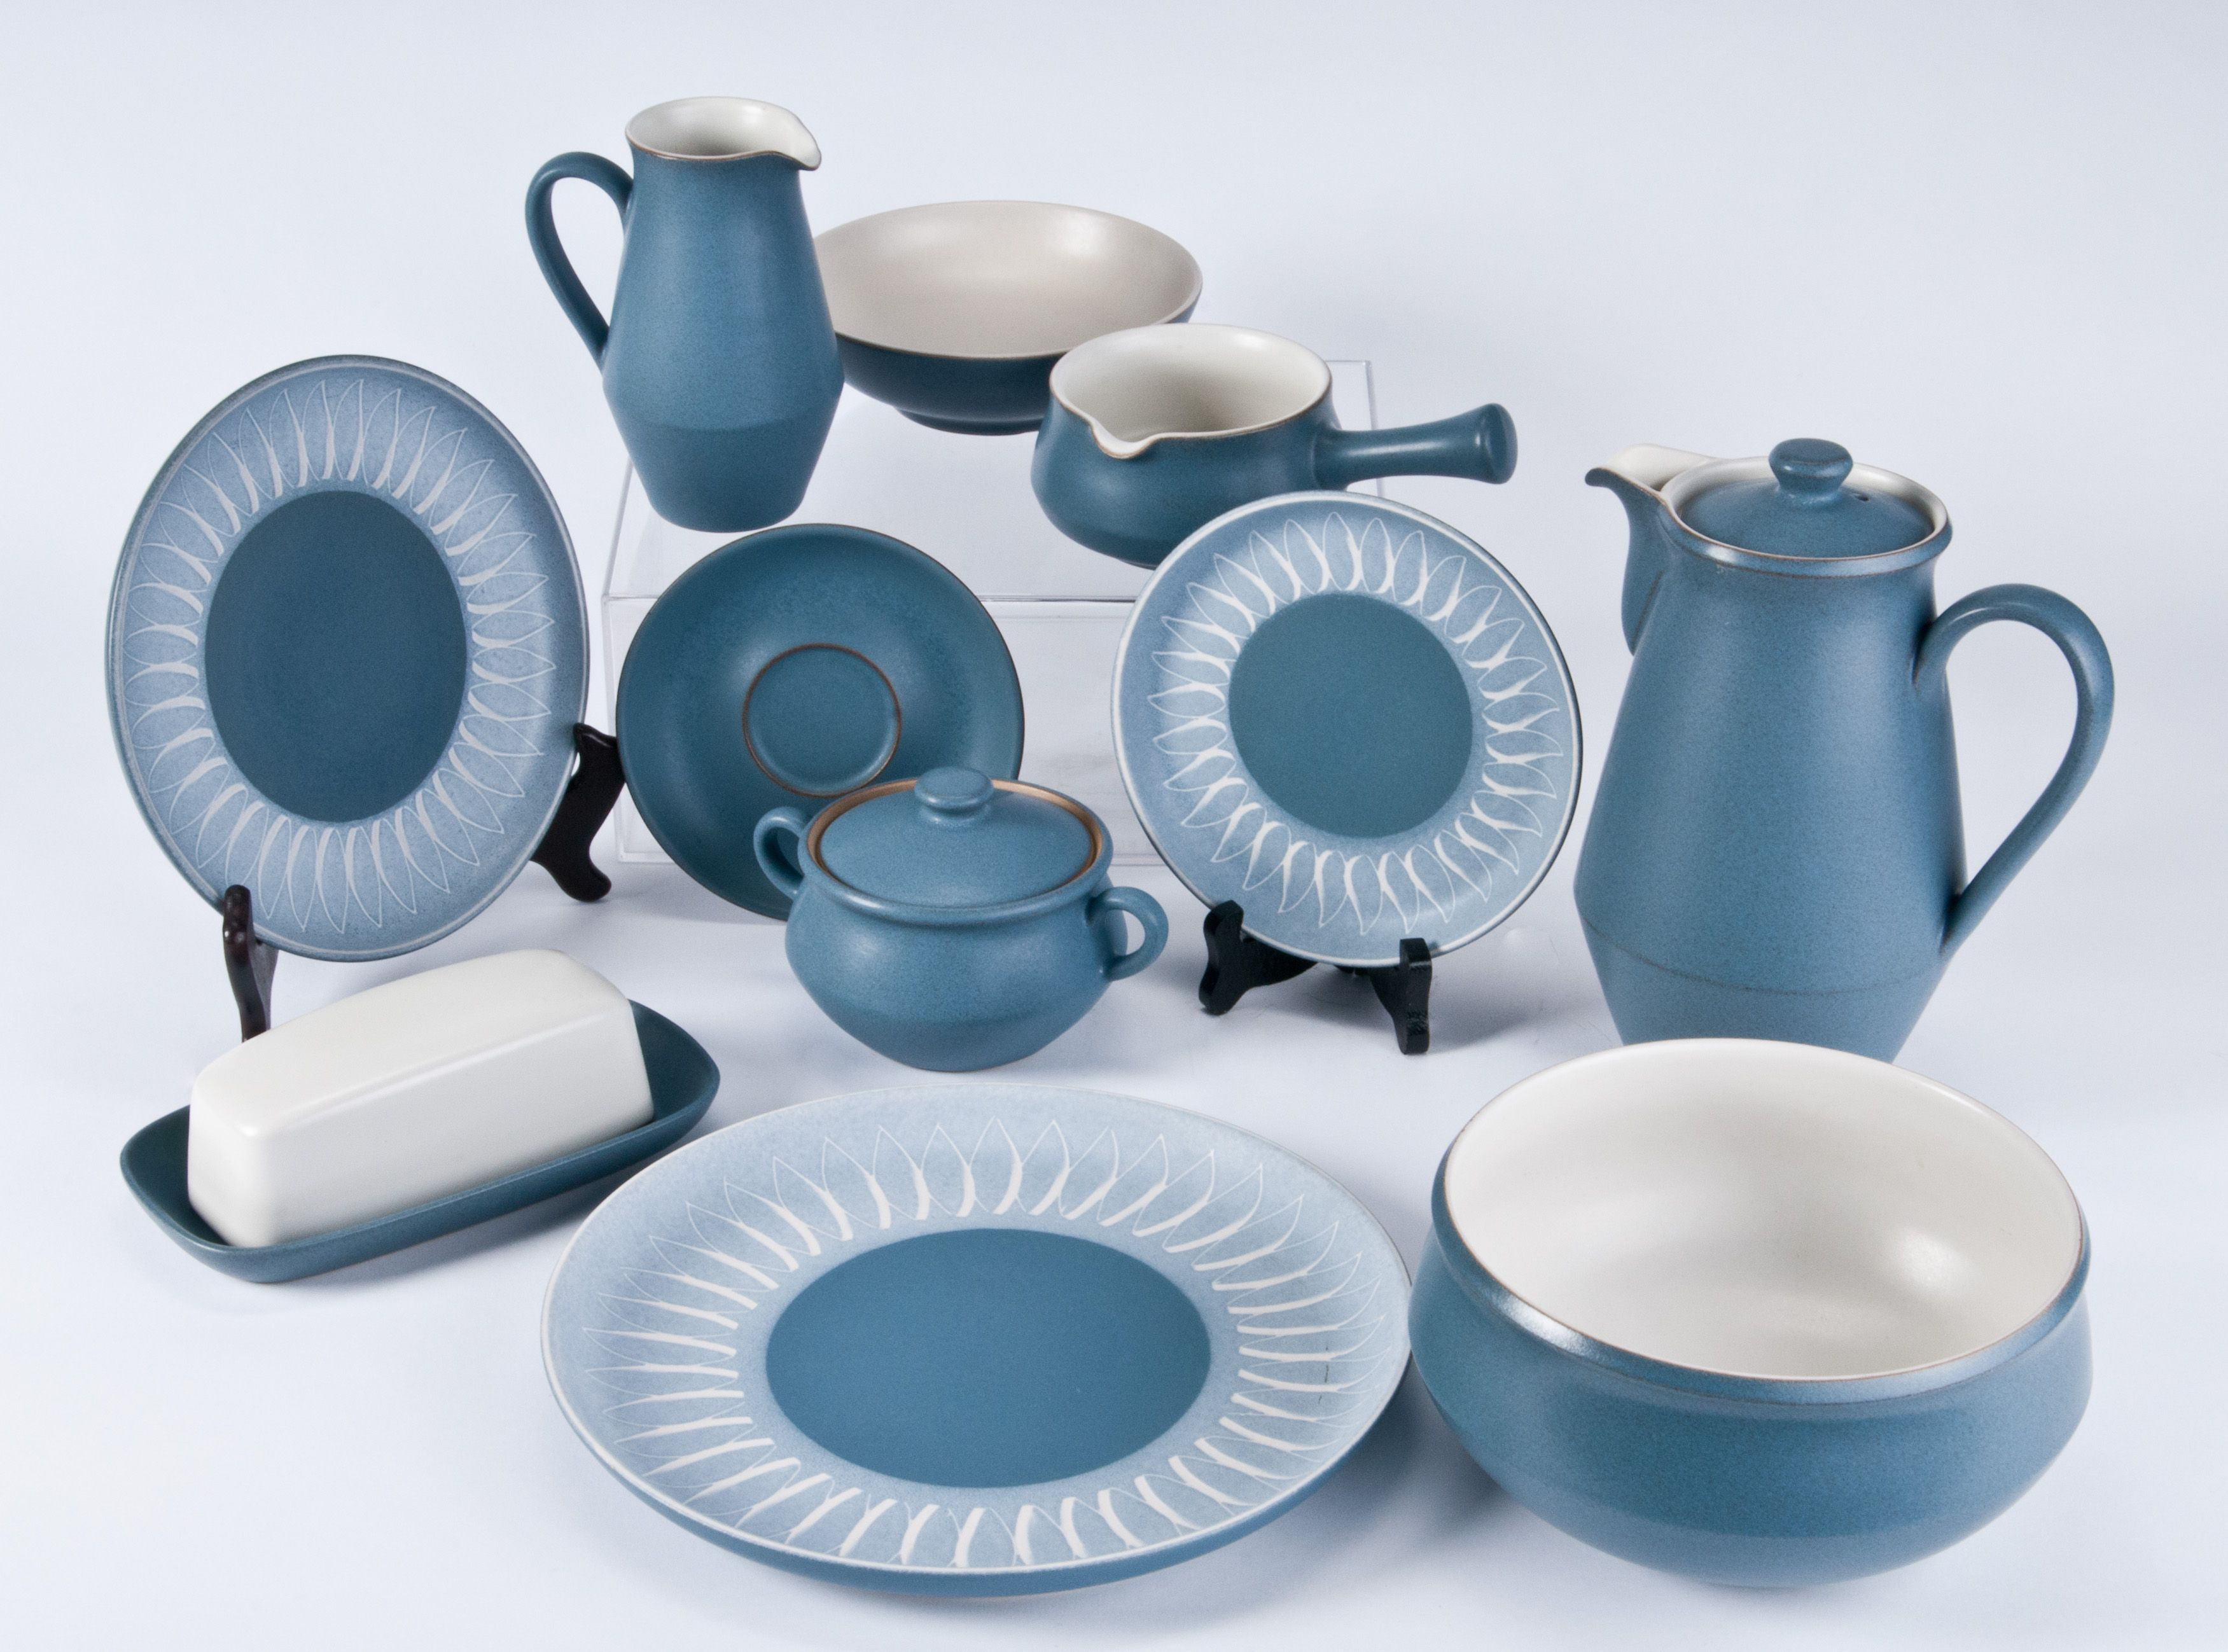 Vintage Denby China- Echo Pattern. Made in England in the 1960\u0027s just like & Vintage Denby China- Echo Pattern. Made in England in the 1960\u0027s ...